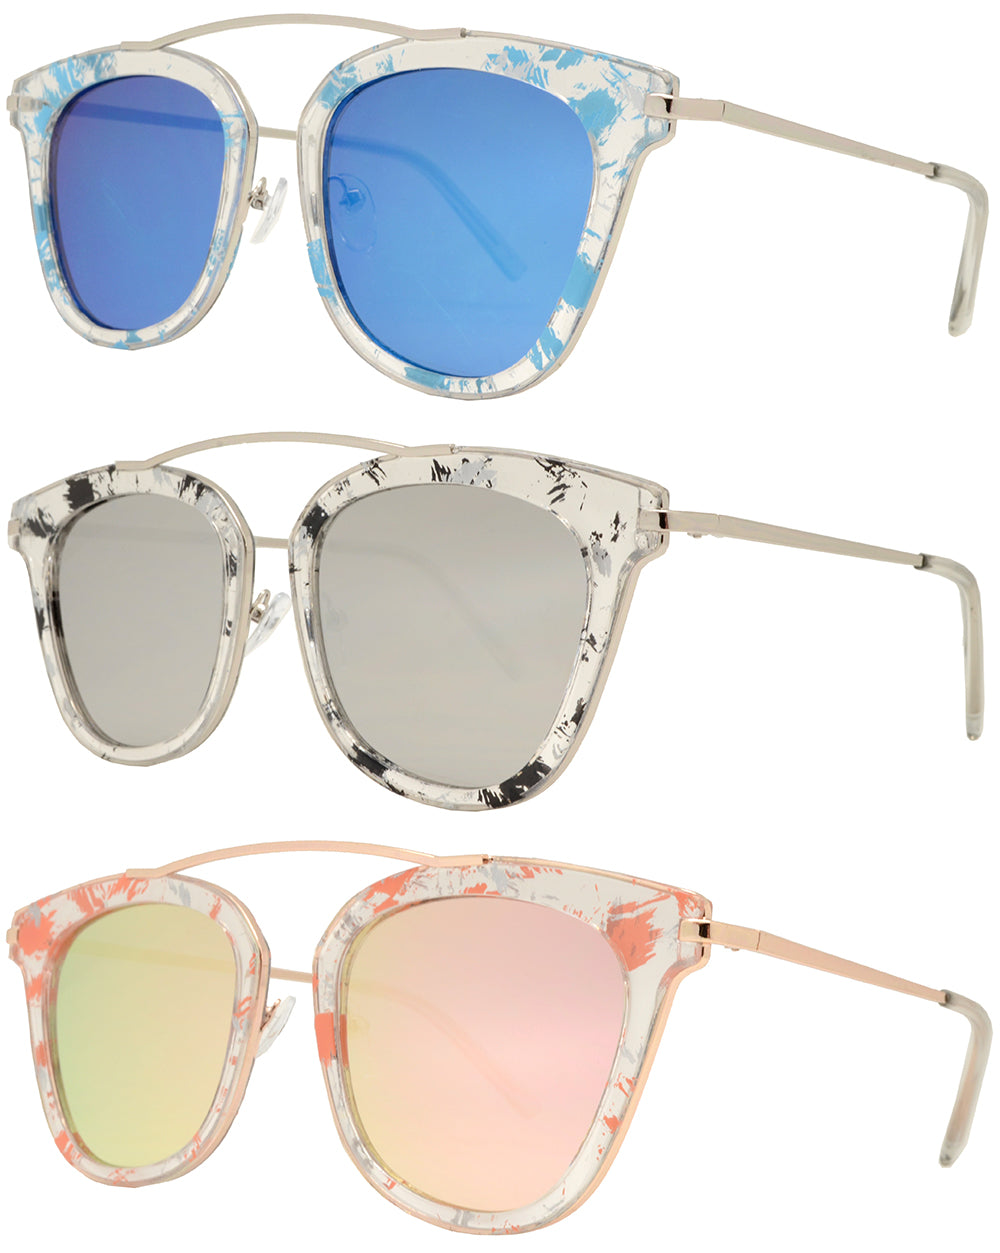 8561 RVC - Women's Fashion Sunglasses with Color Mirror Lens and Brow Bar no Bridge